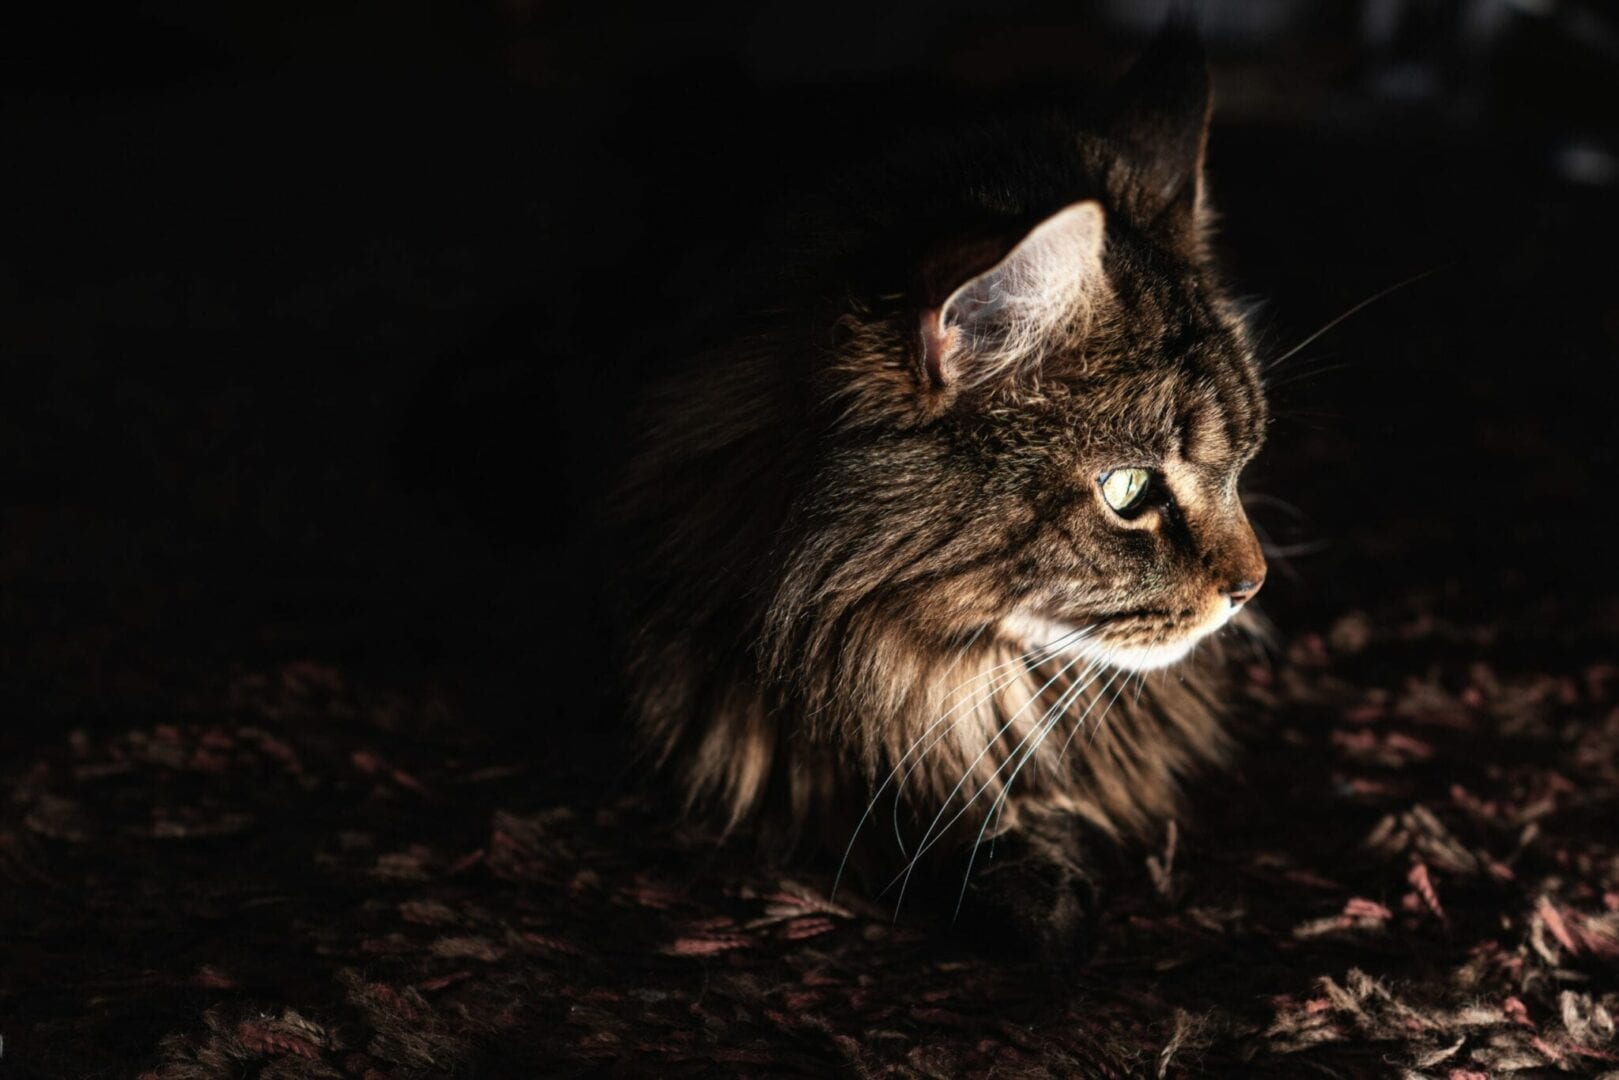 cats are crepuscular